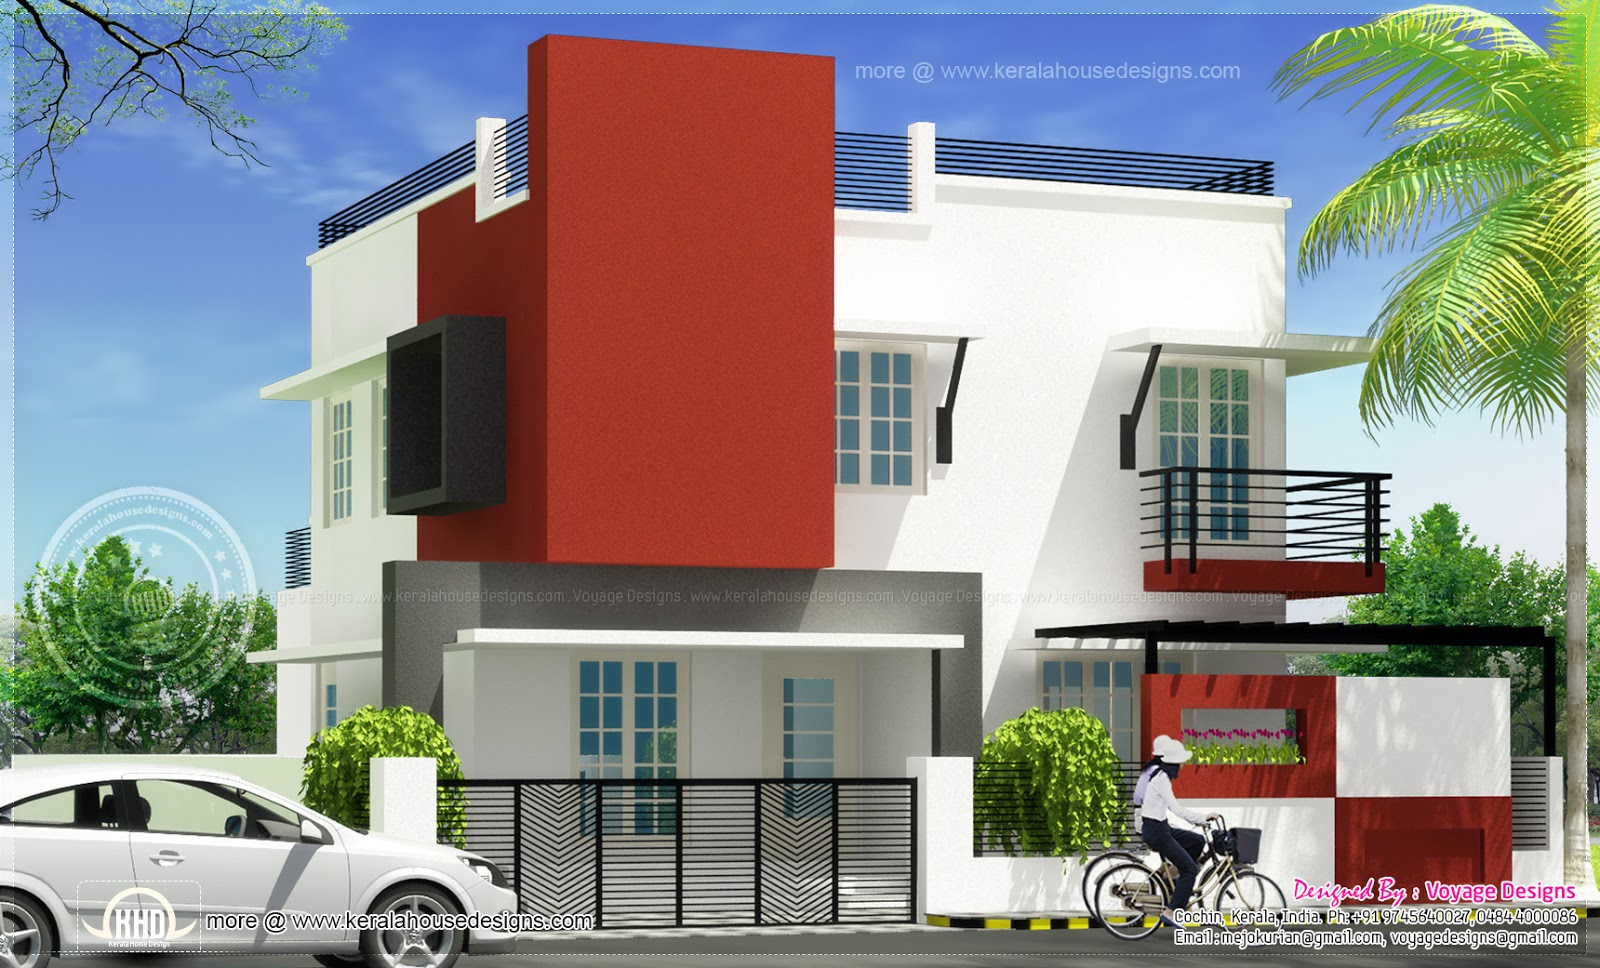 4 bedroom modern house in 200 square yards kerala home 200 yards house design